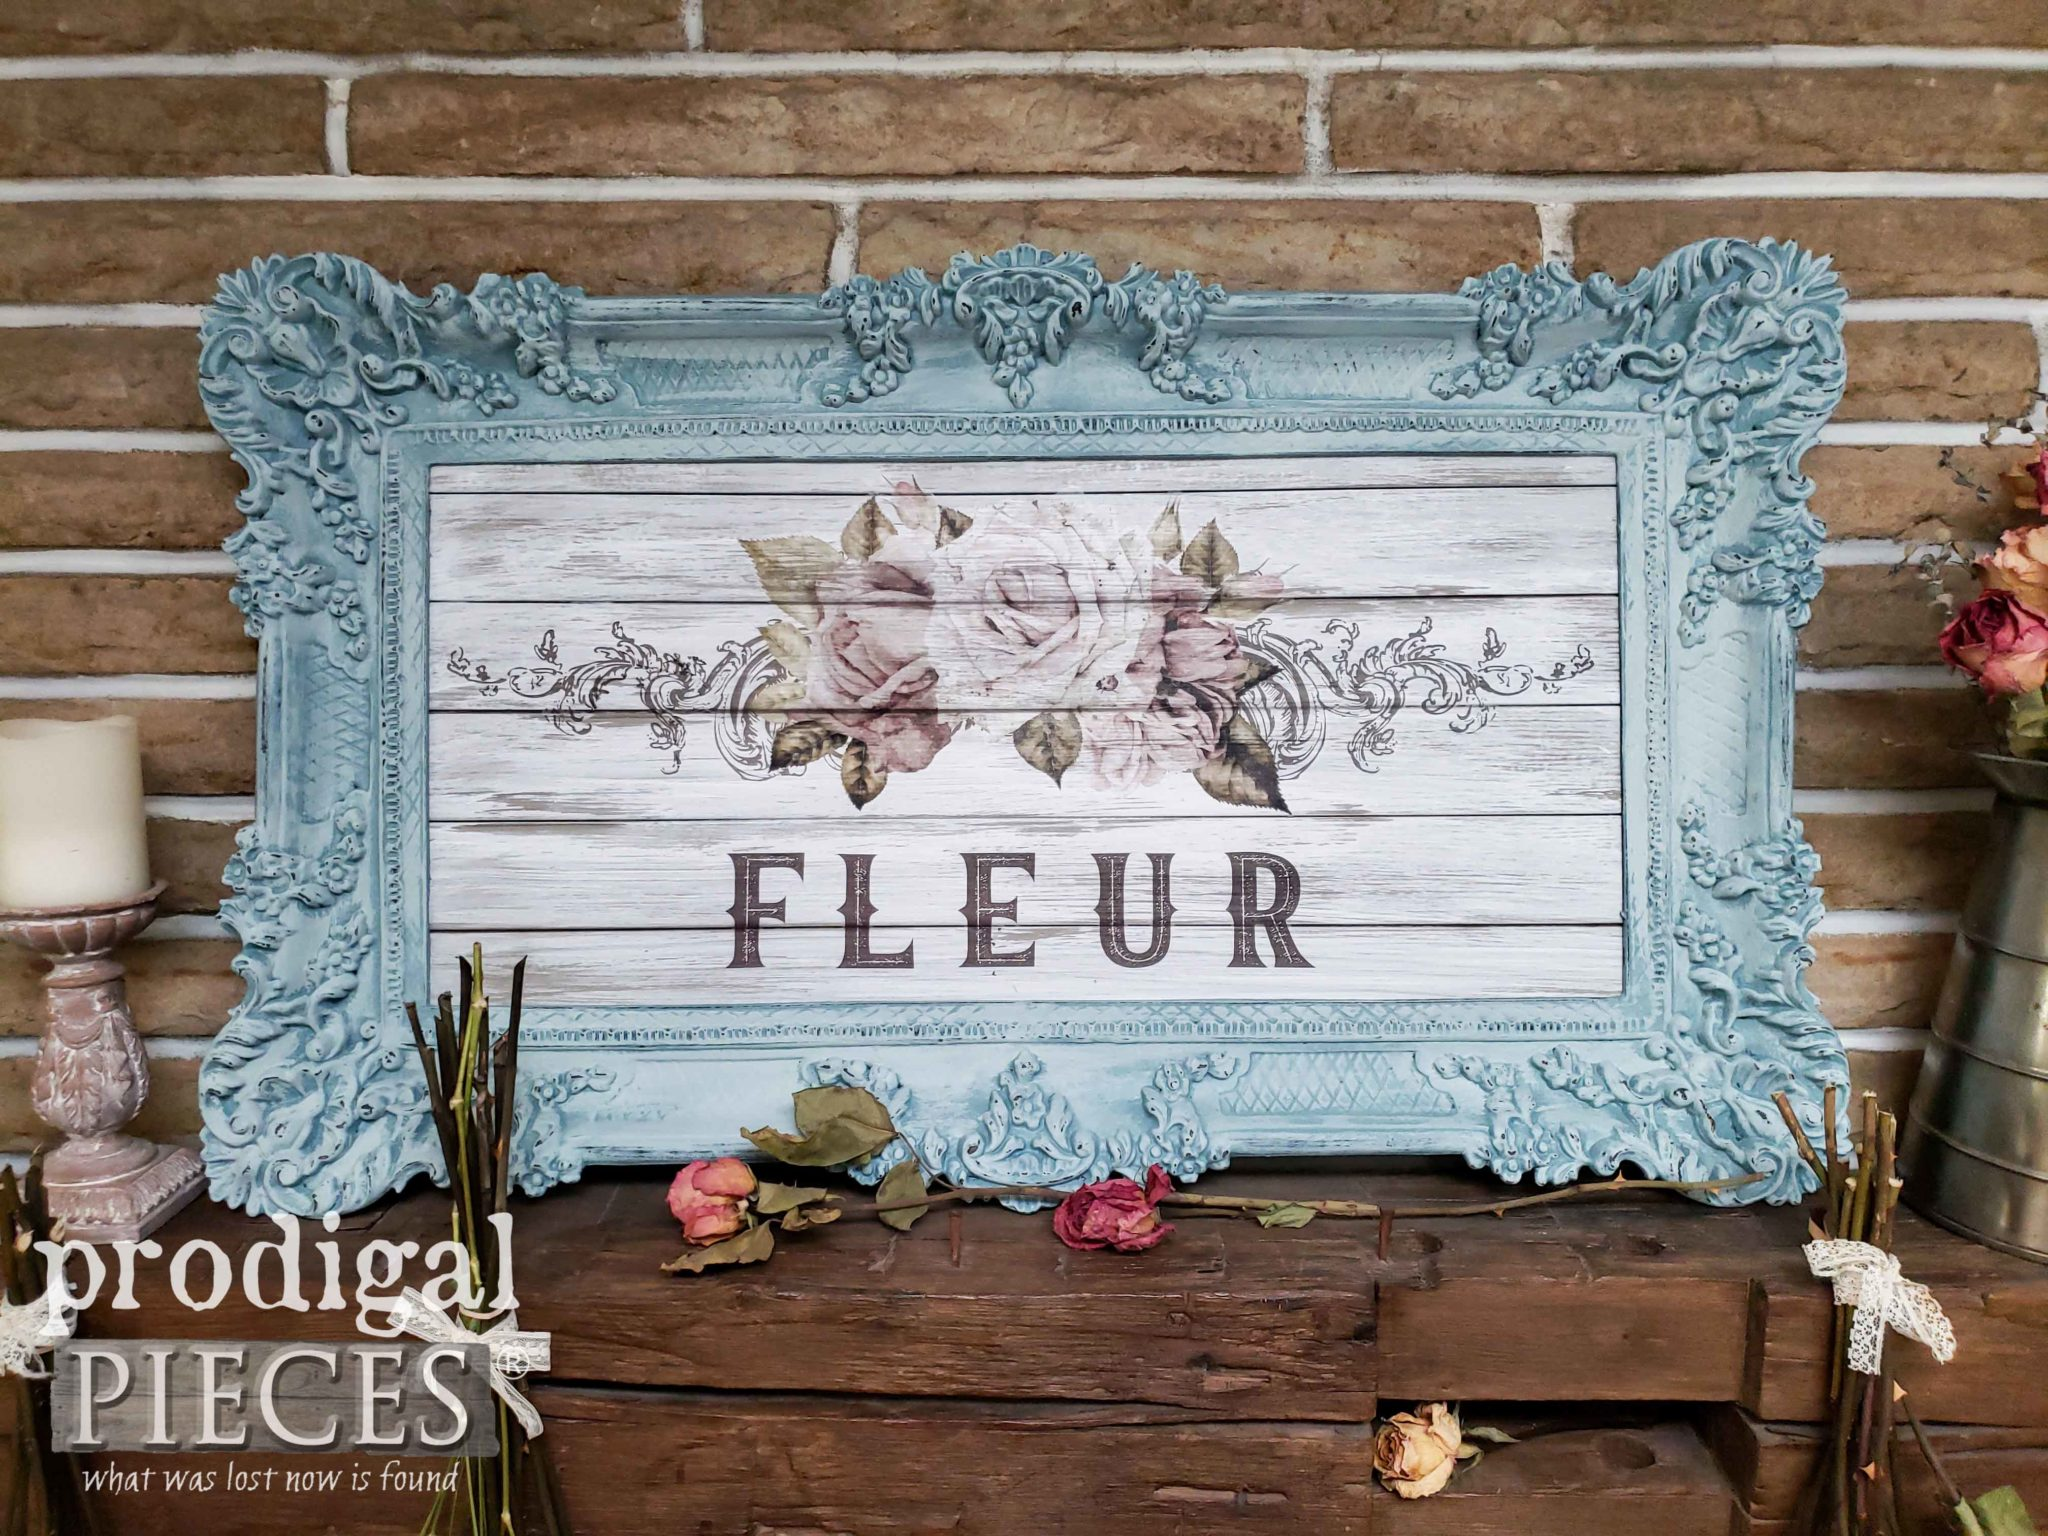 French Flower Shabby Chic Wall Art with Prima re-Design as used by Larissa of Prodigal Pieces | prodigalpieces.com #prodigalpieces #home #art #shabbychic #french #homedecor